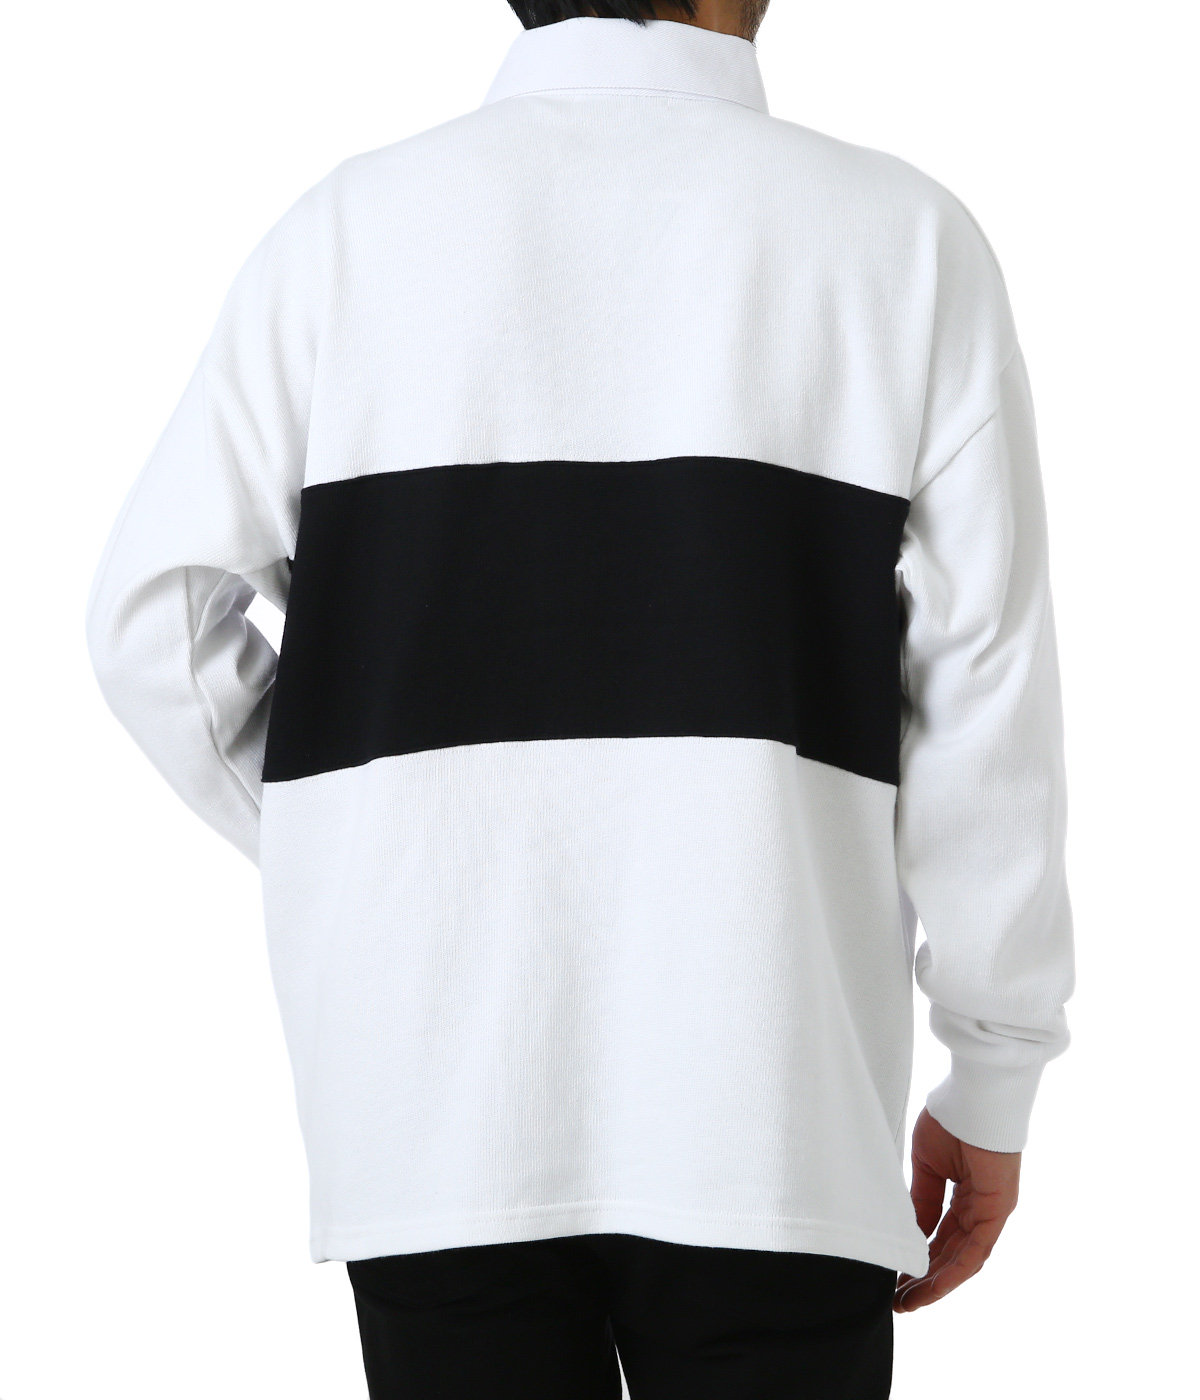 2Tone Rugby Shirt